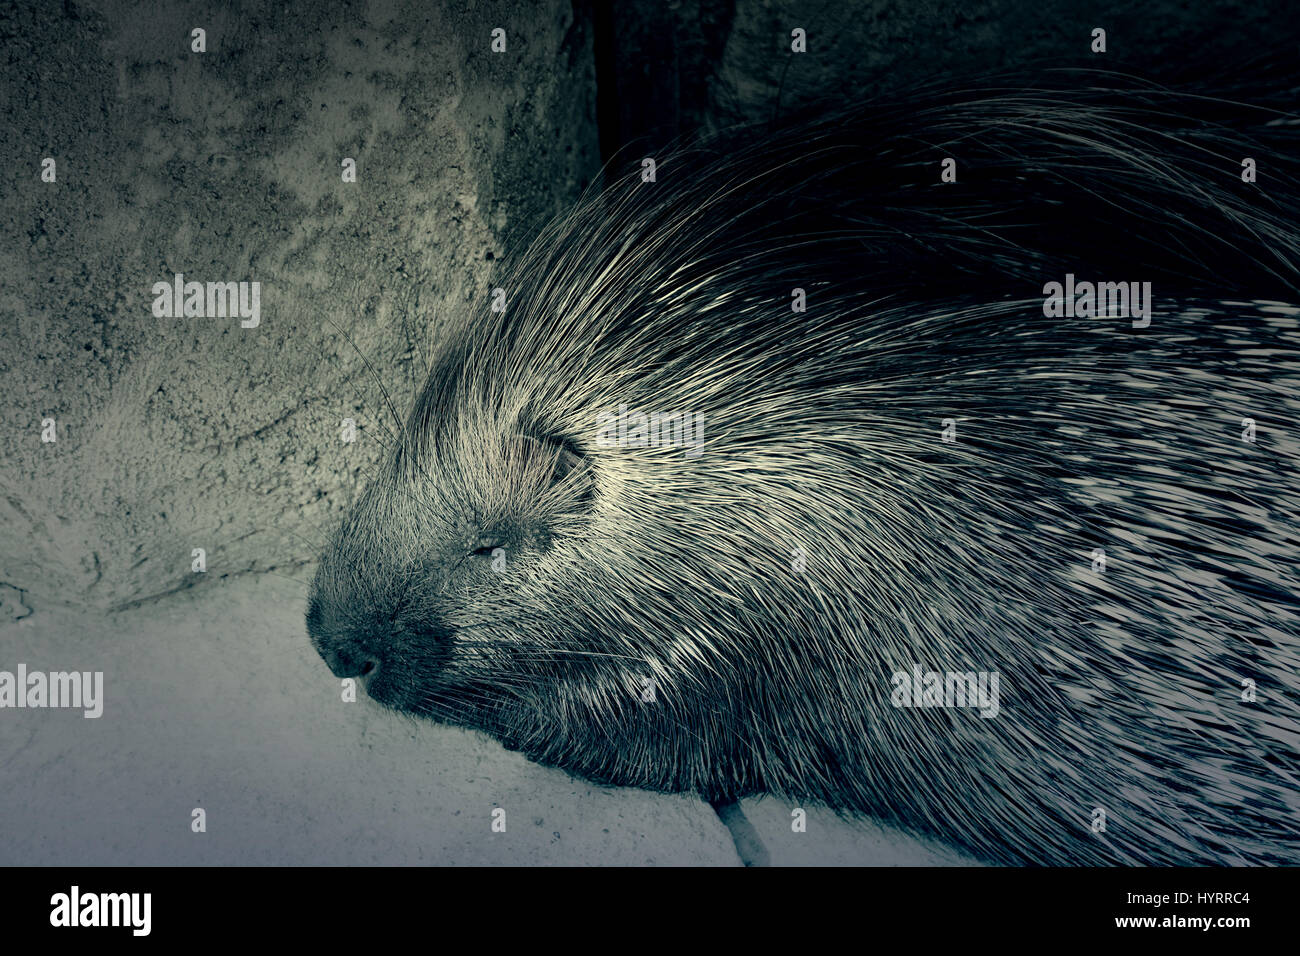 Porcupine wild in a zoo, an animal detail exotic mammal - Stock Image